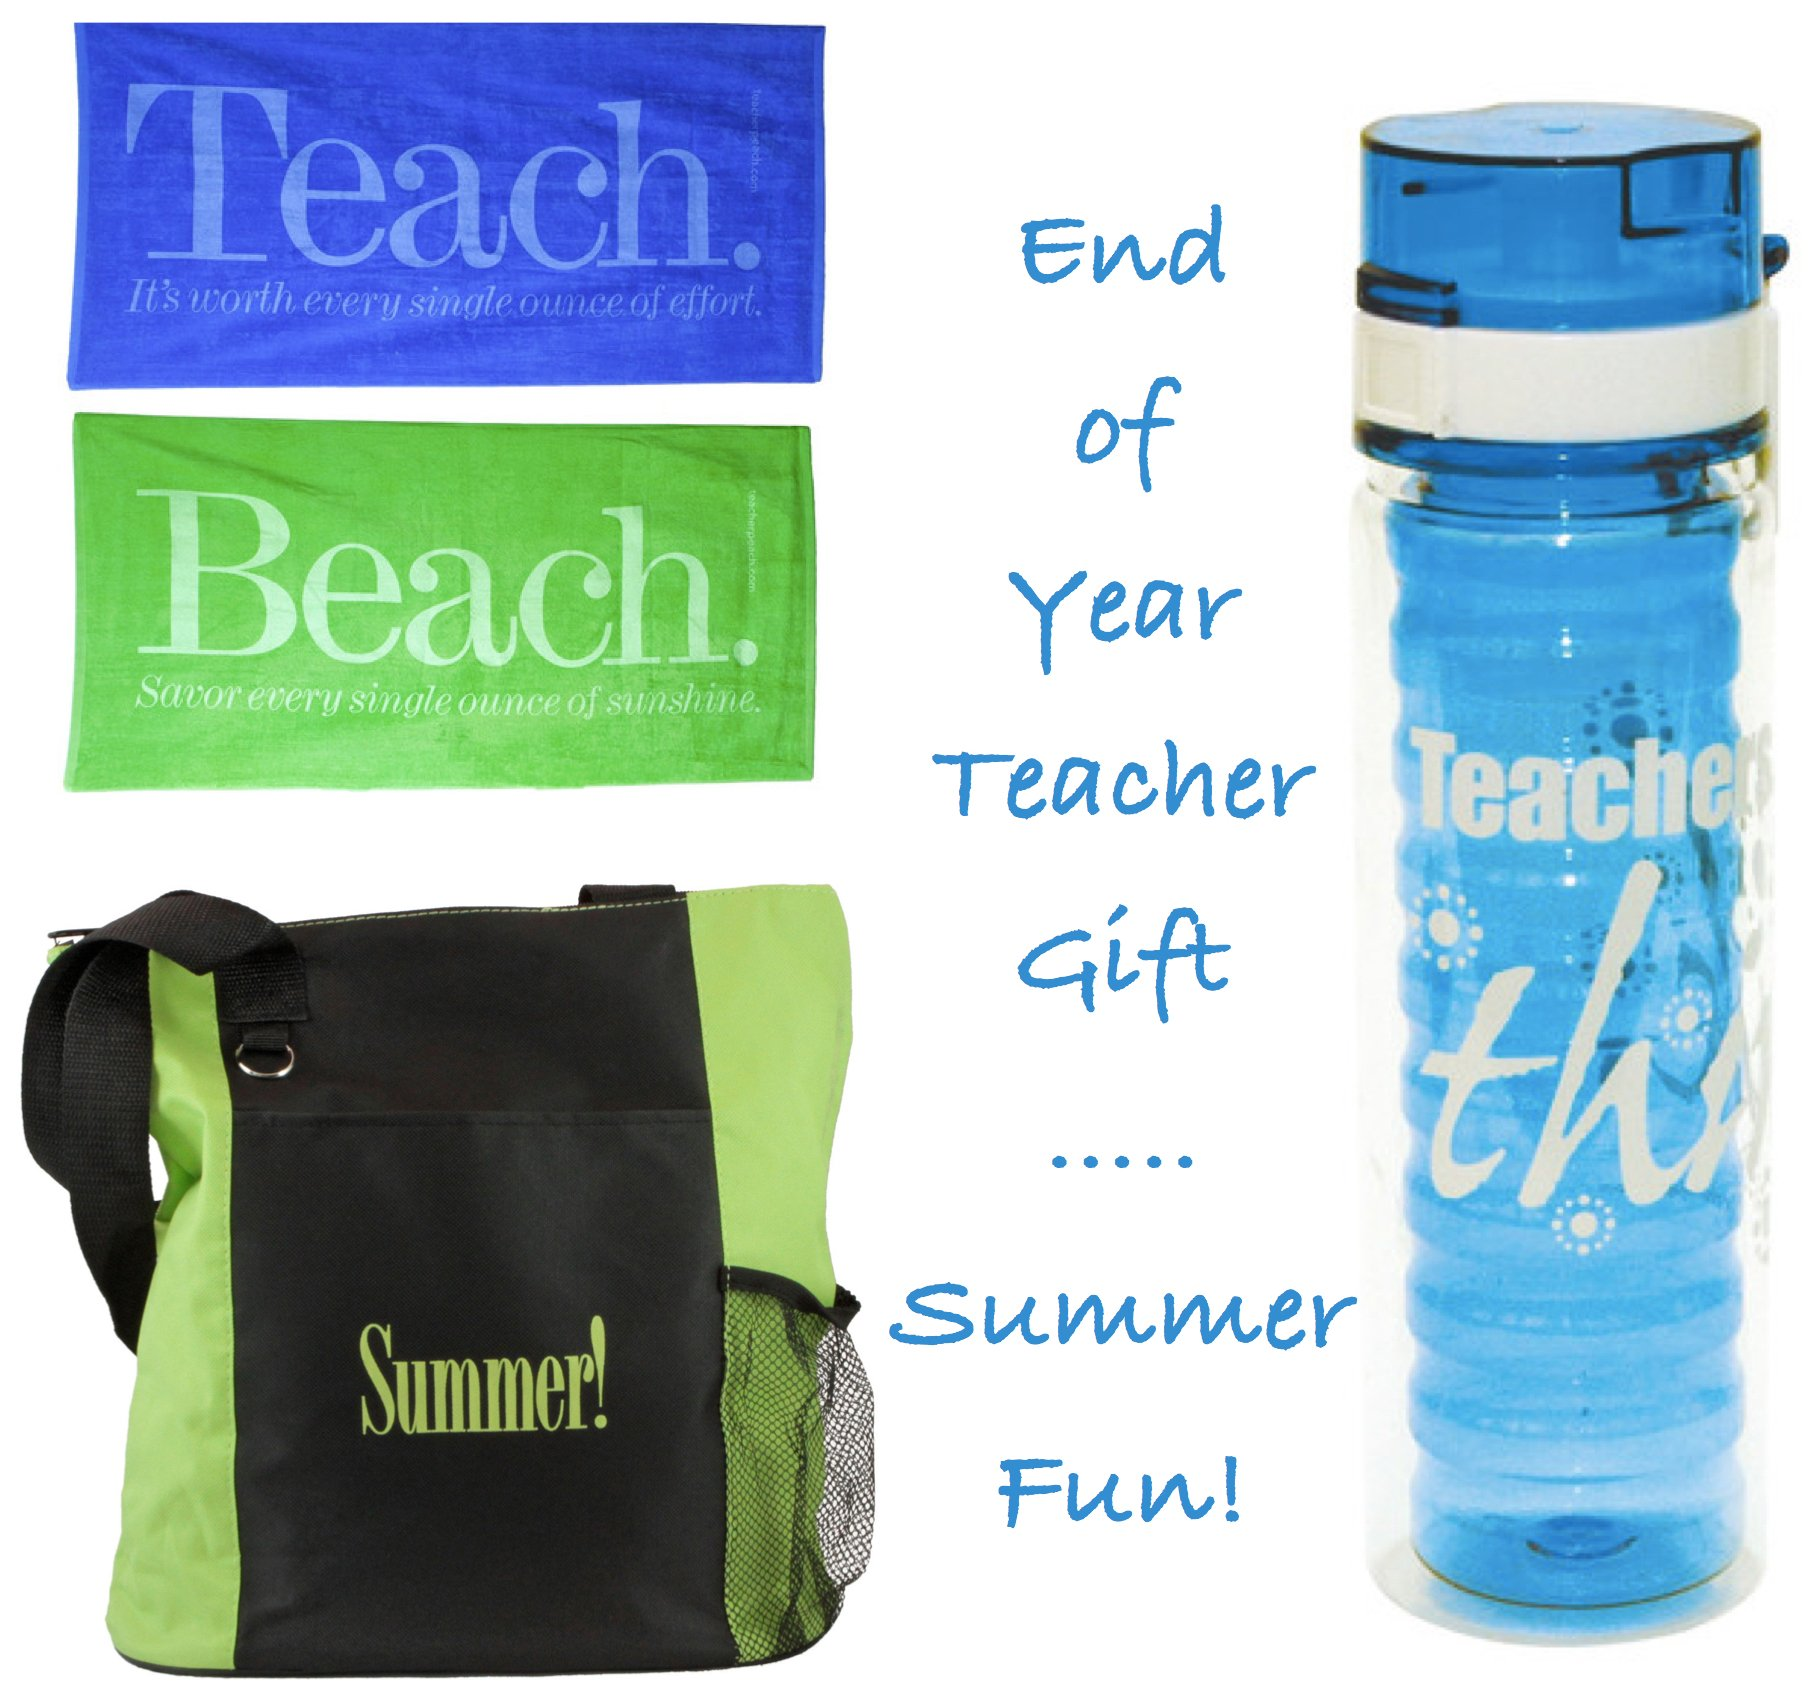 End of Year Teacher Gift -- Summer Fun